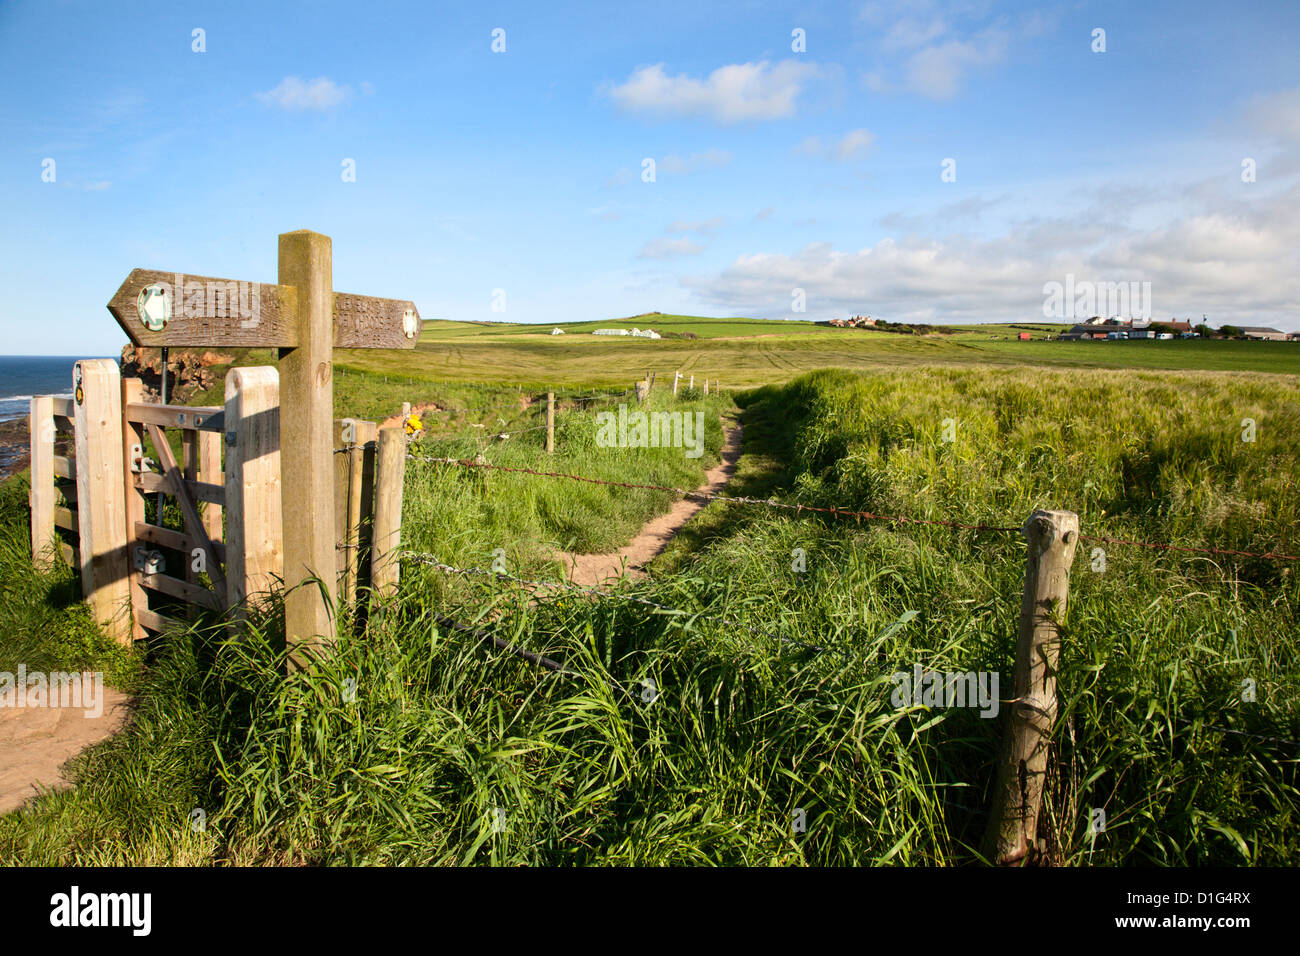 The Cleveland Way Footpath at Saltwick Bay near Whitby, North Yorkshire, Yorkshire, England, United Kingdom, Europe - Stock Image